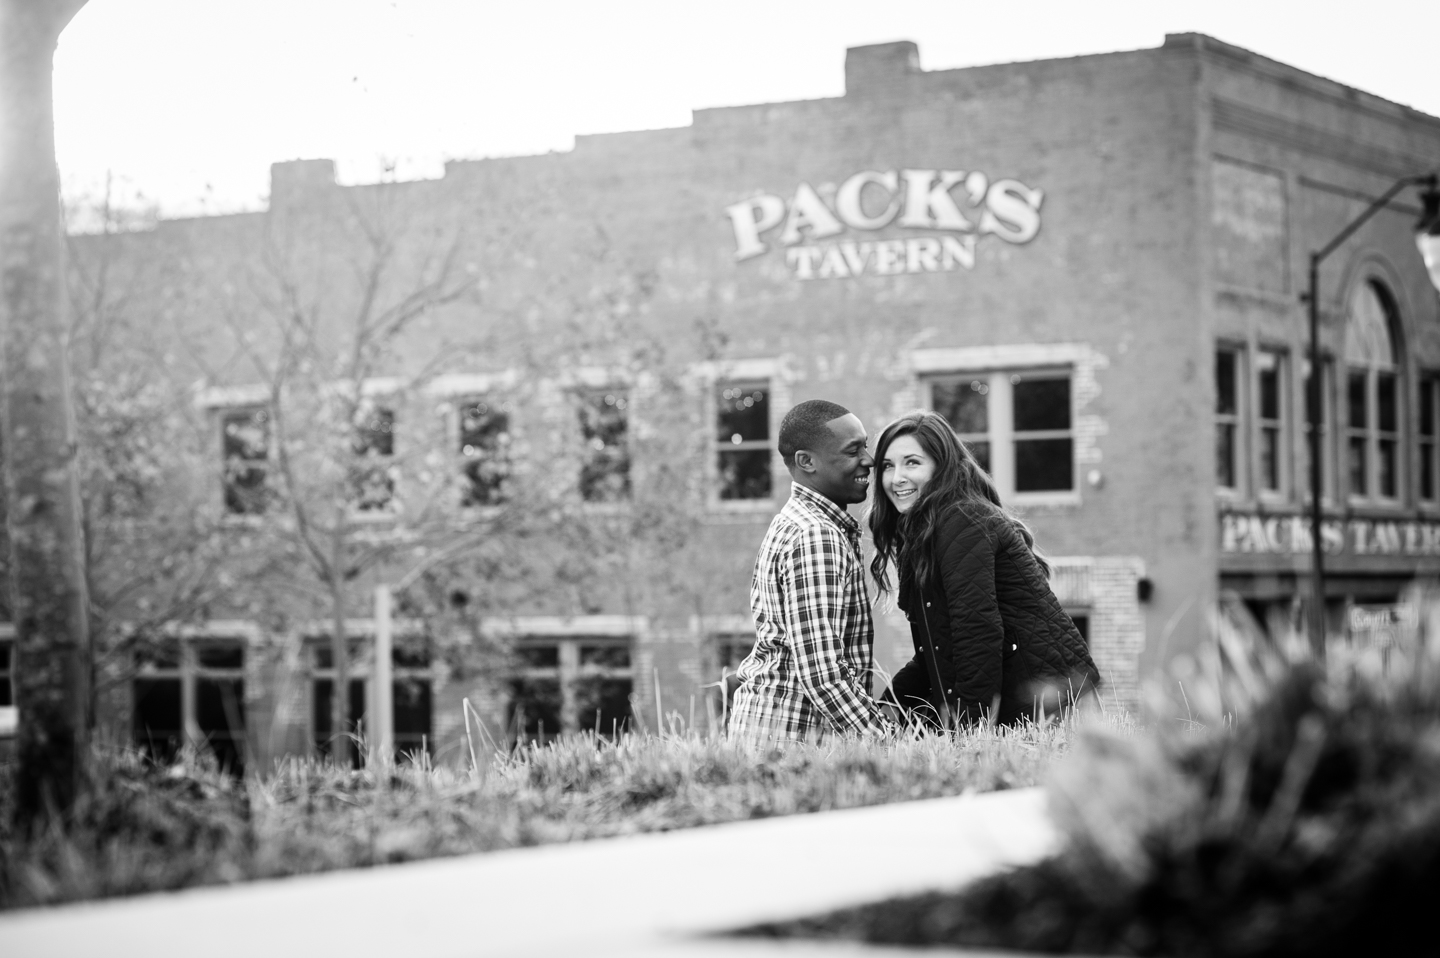 fiance gives his bride to be a kiss on the cheek by Packs Tavern in asheville nc